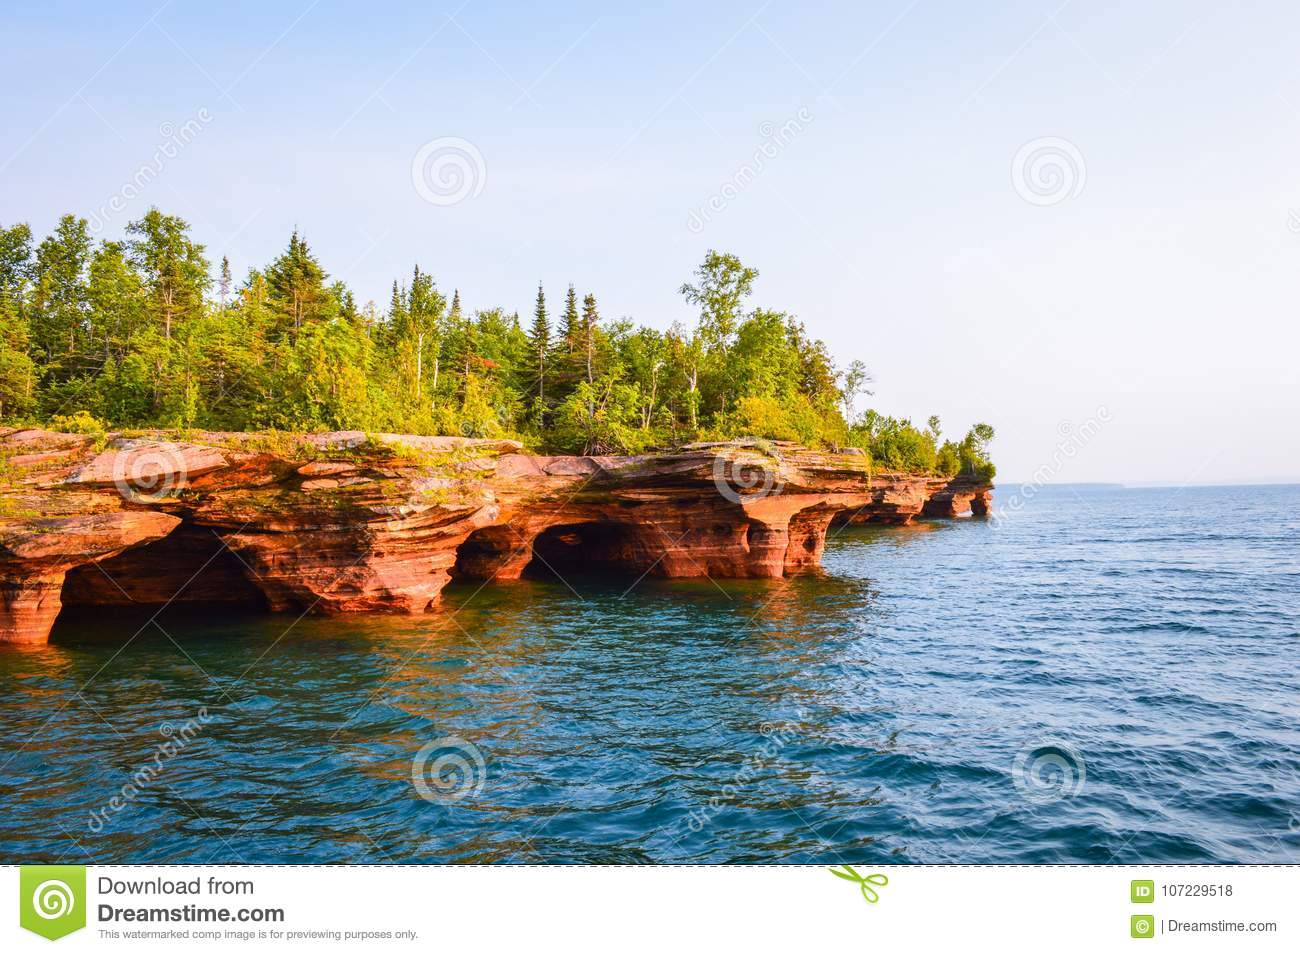 Sea caves of the Devil& x27;s Island in Apostle Islands of the Lake Superior